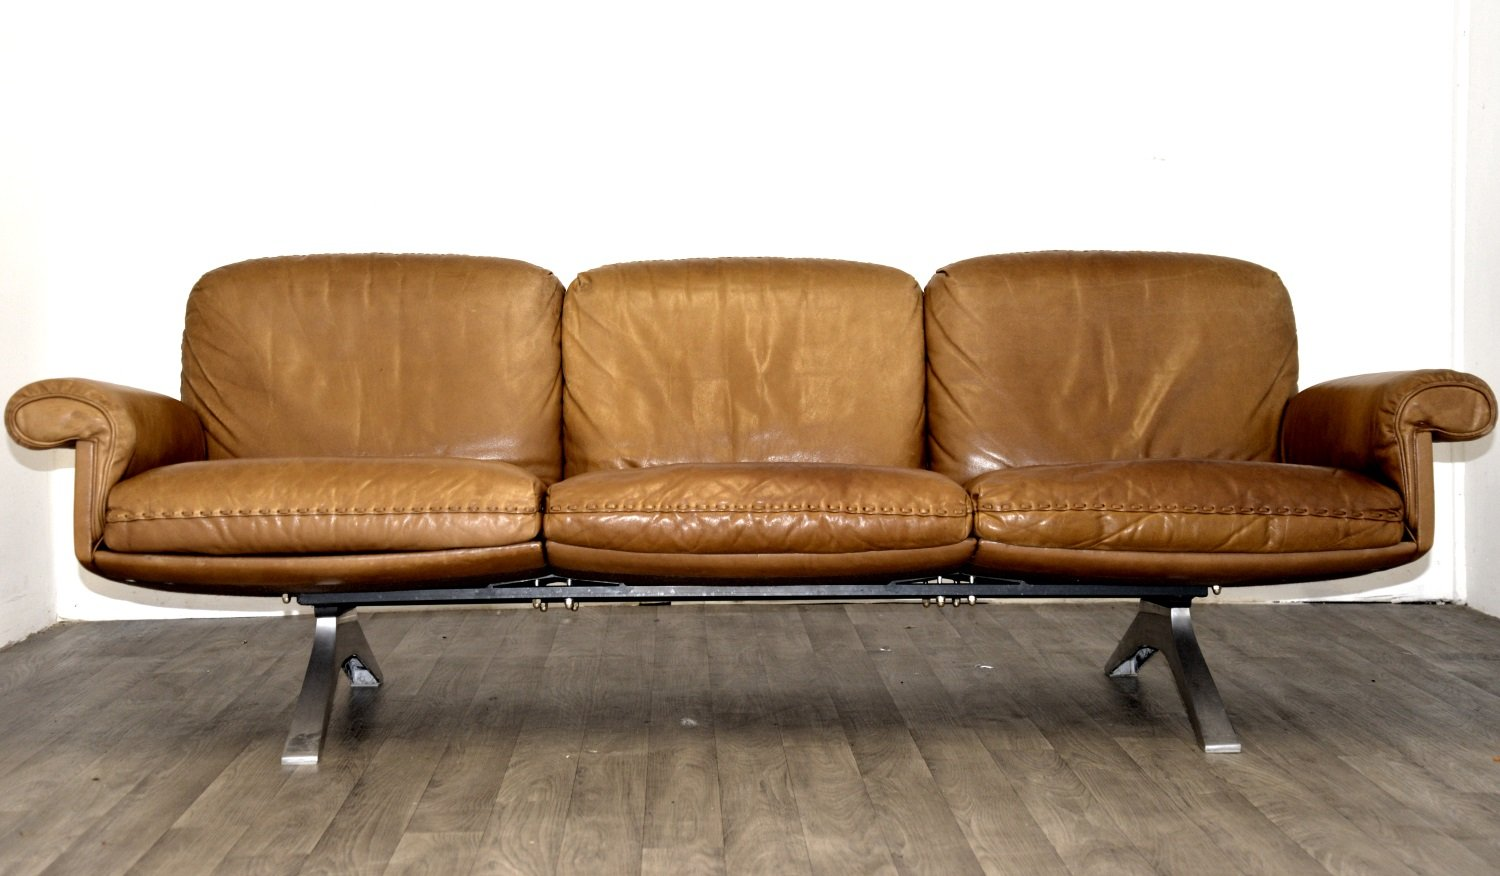 Swiss ds 31 three seater sofa armchair from de sede for Sofa armchair